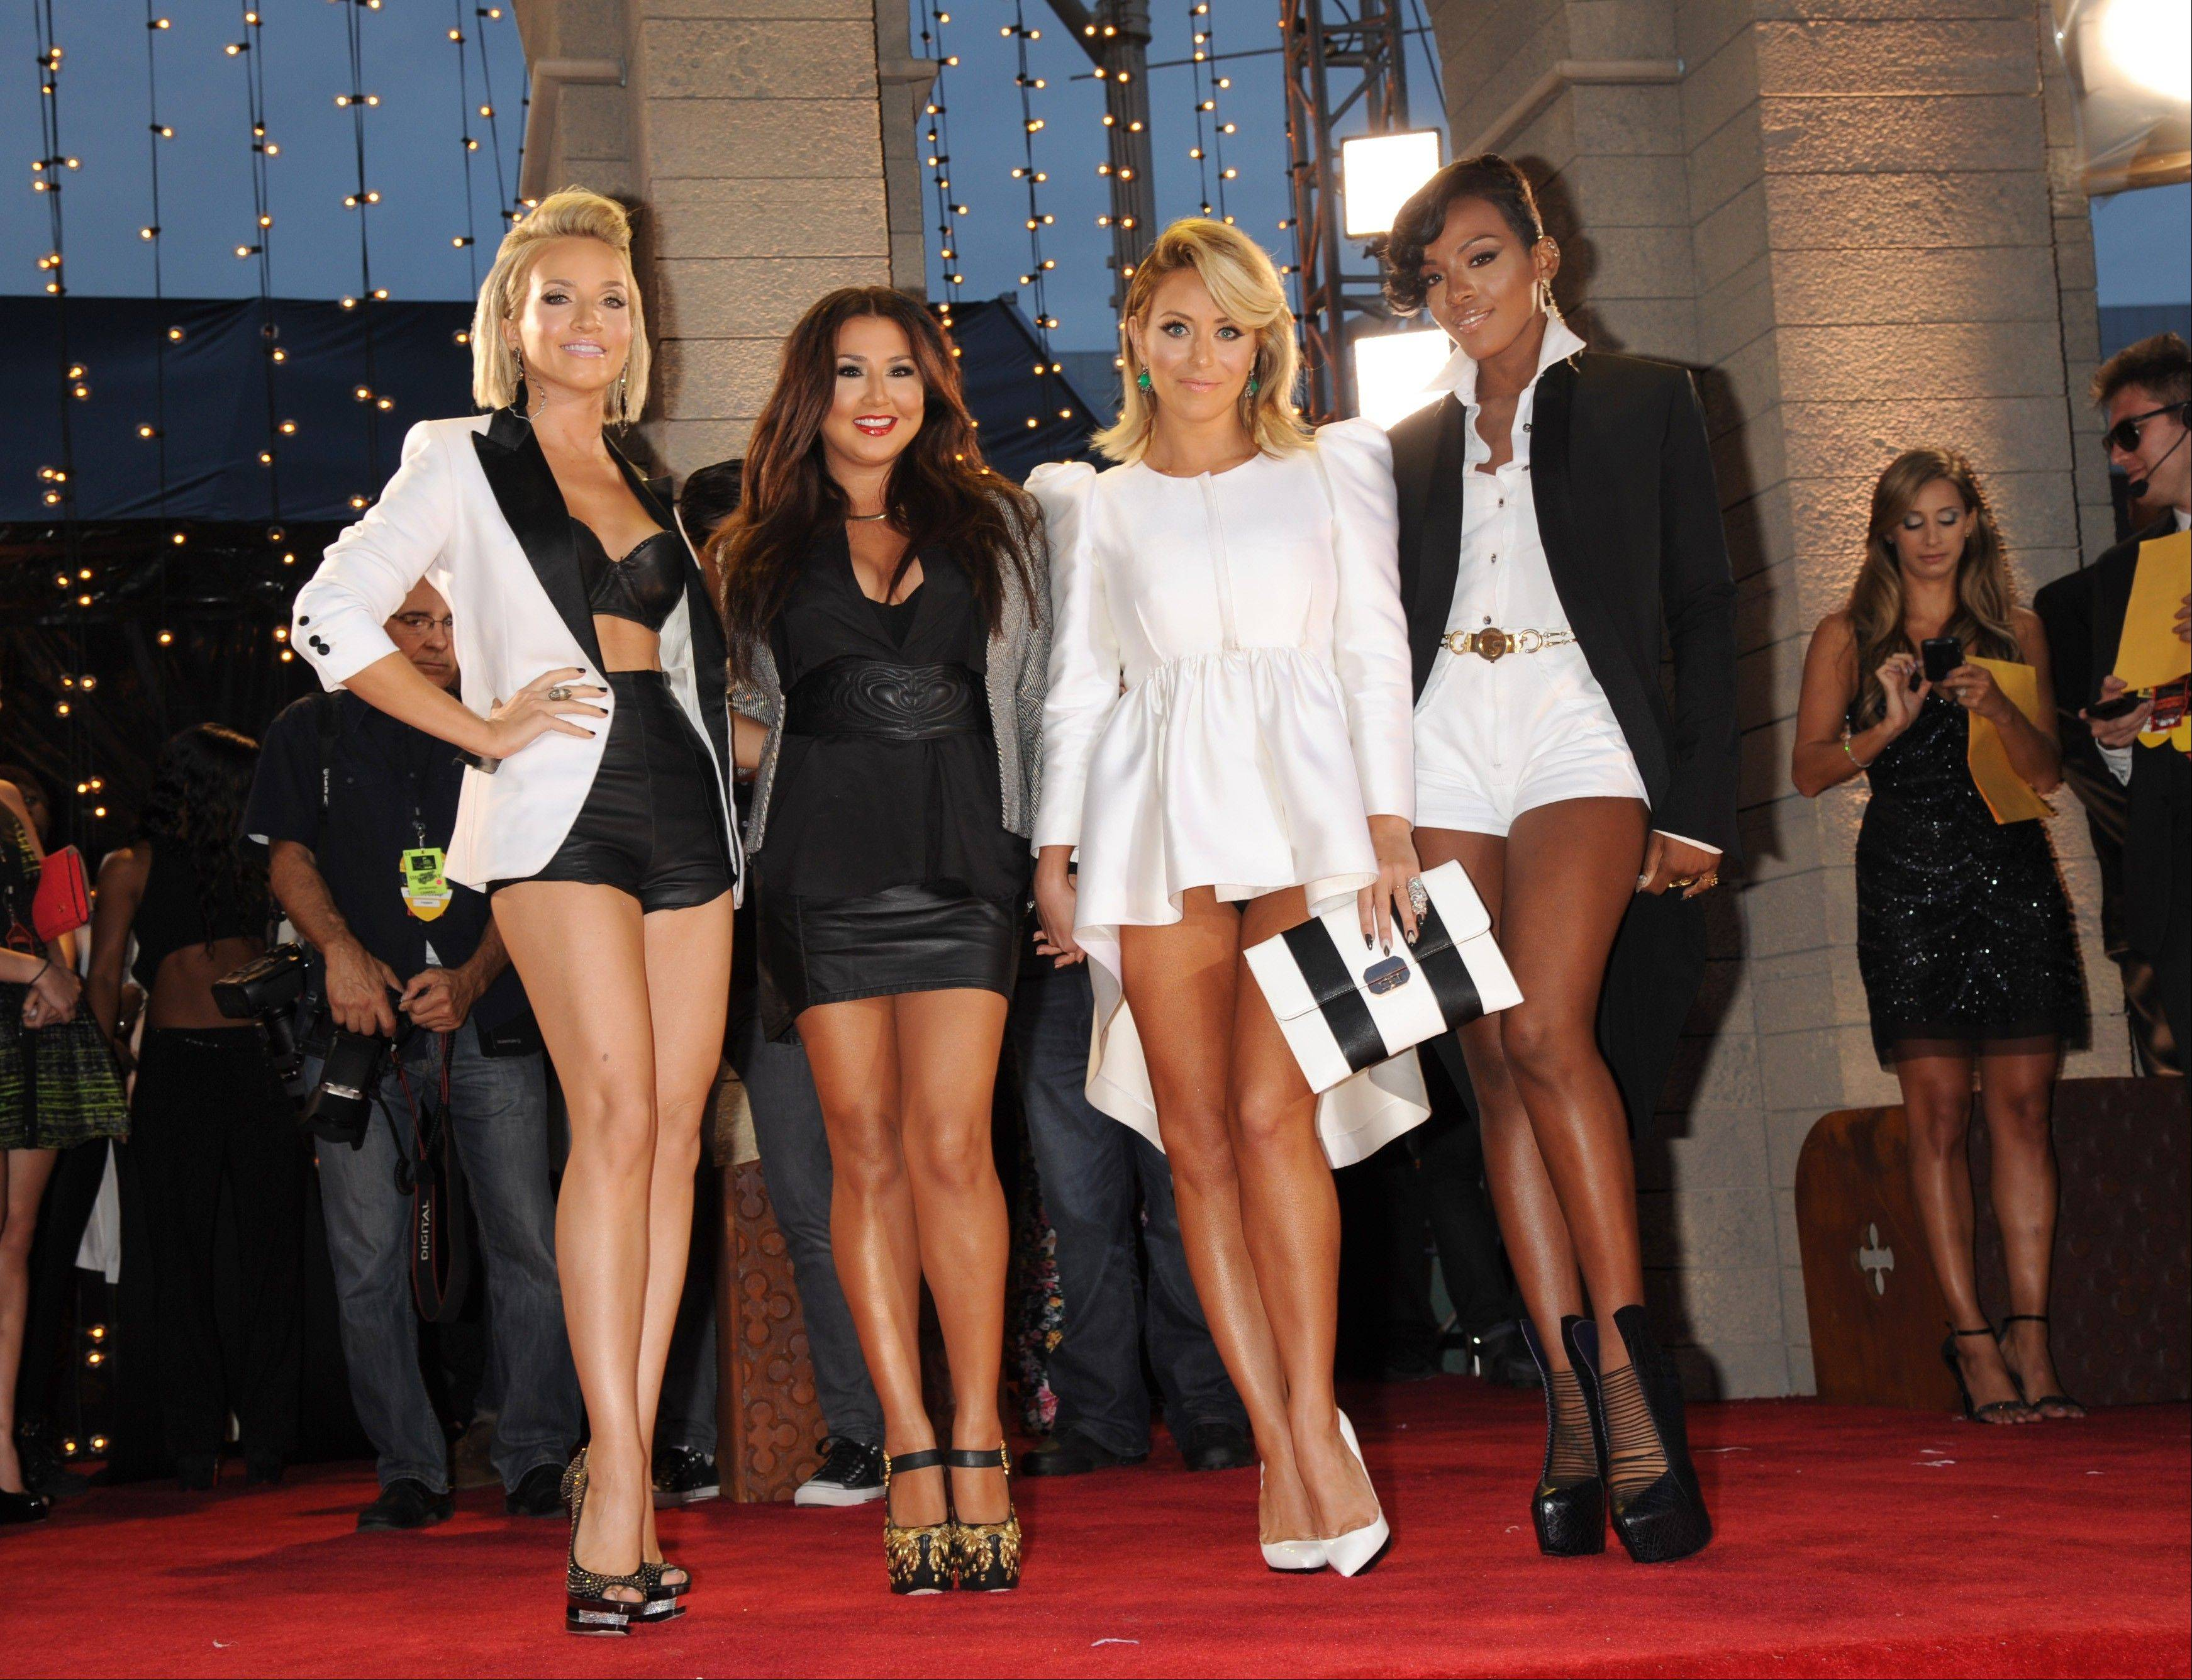 Members of of Danity Kane, from left, Shannon Bex, Andrea Fimbres, Aubrey O'Day and Dawn Richards arrive at the MTV Video Music Awards on Sunday, Aug. 25, 2013, at the Barclays Center in the Brooklyn borough of New York.